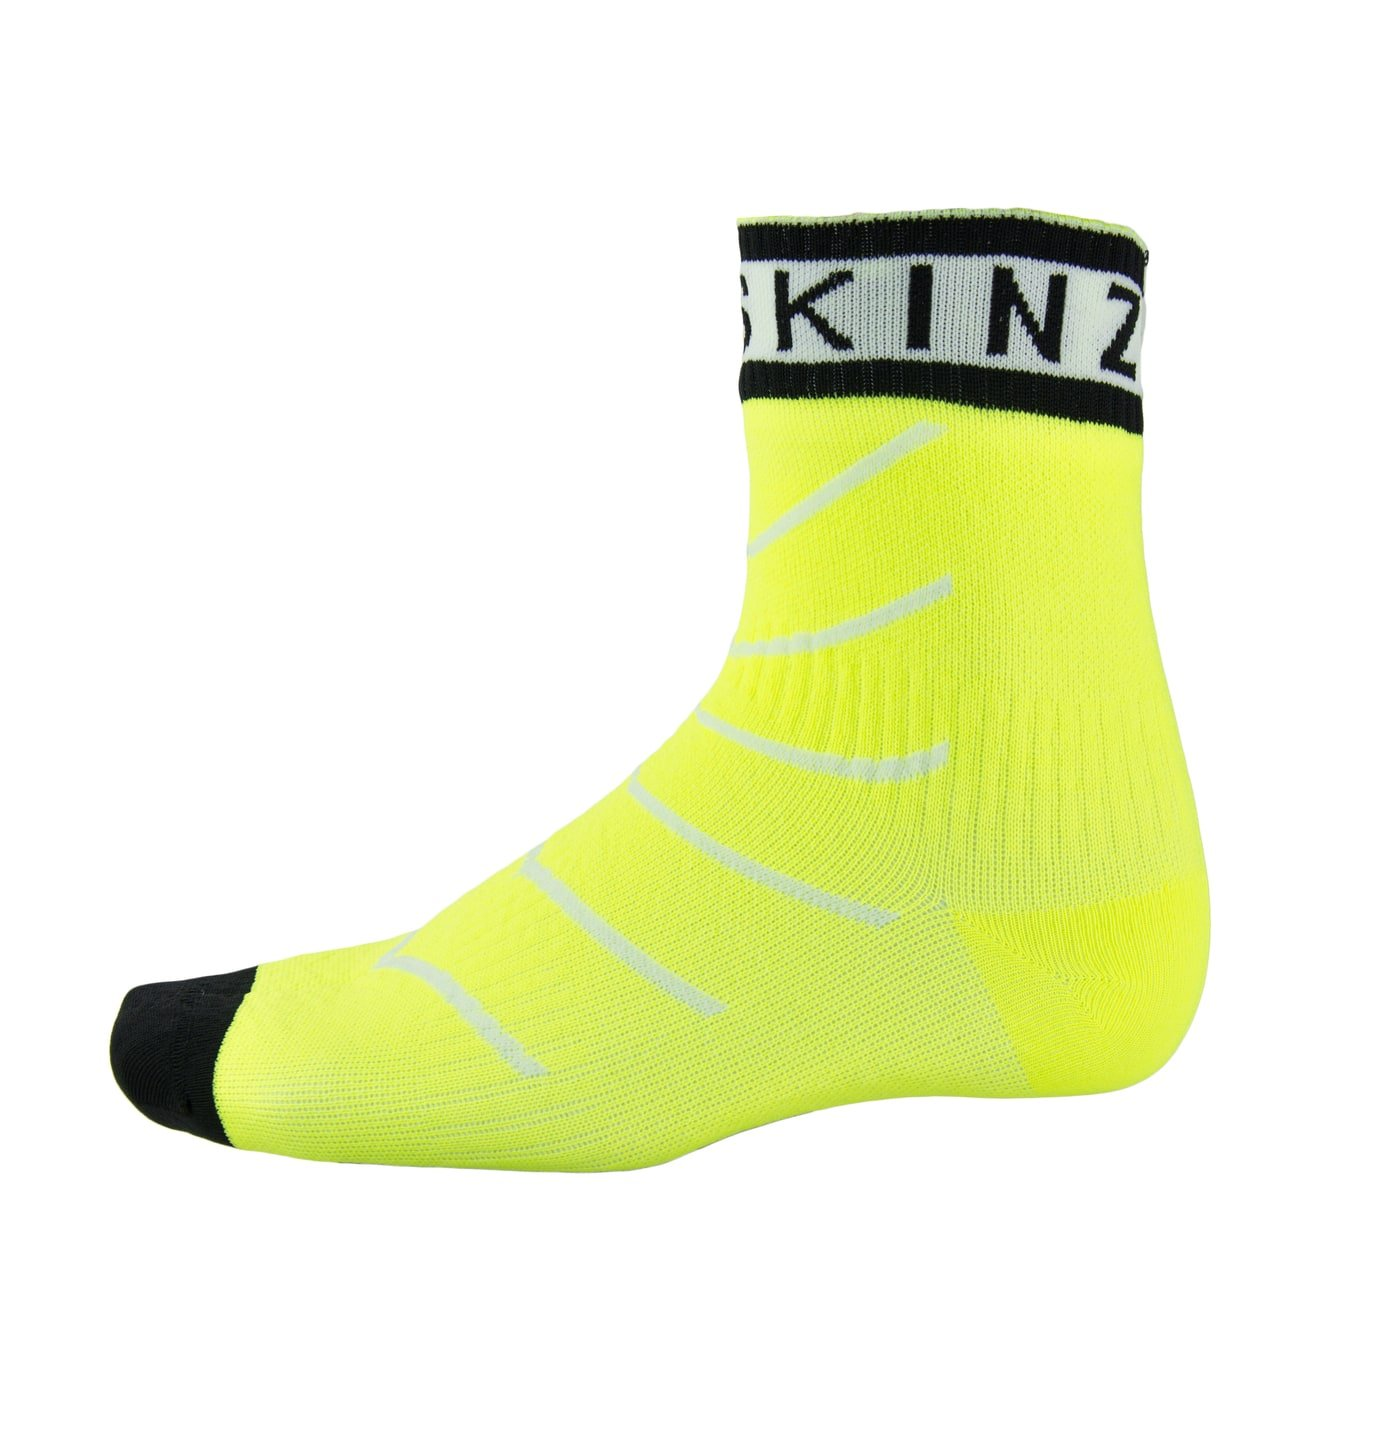 SEALSKINZ Super Thin Pro Ankle Sock with Hydrostop Neon Yellow/White/Black, XL - Men's by SEALSKINZ